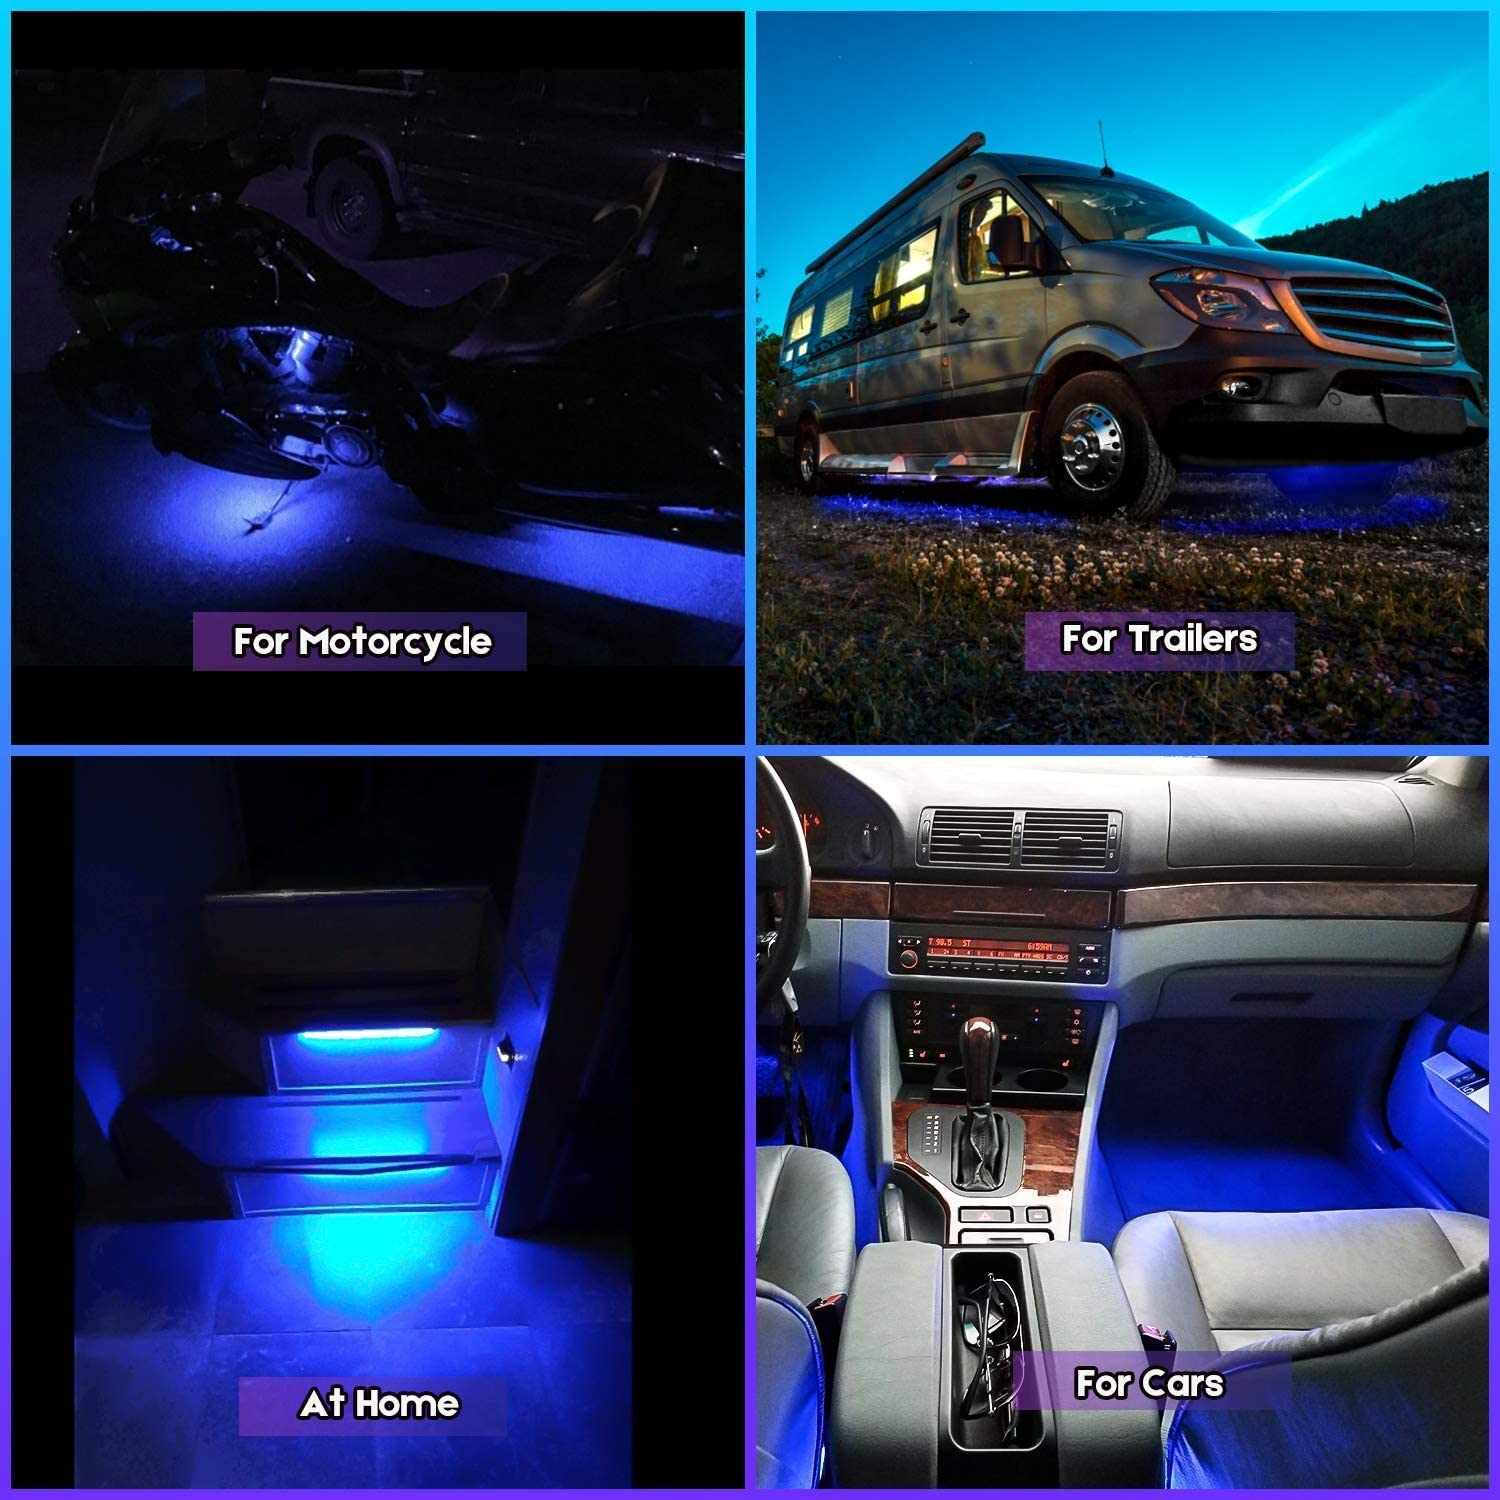 Geeon 8-Pack 8 Blue Motorcycle LED Strip Light 12V Waterproof IP68 for Interior Exterior Automotive Car Trucks Boats Trailer